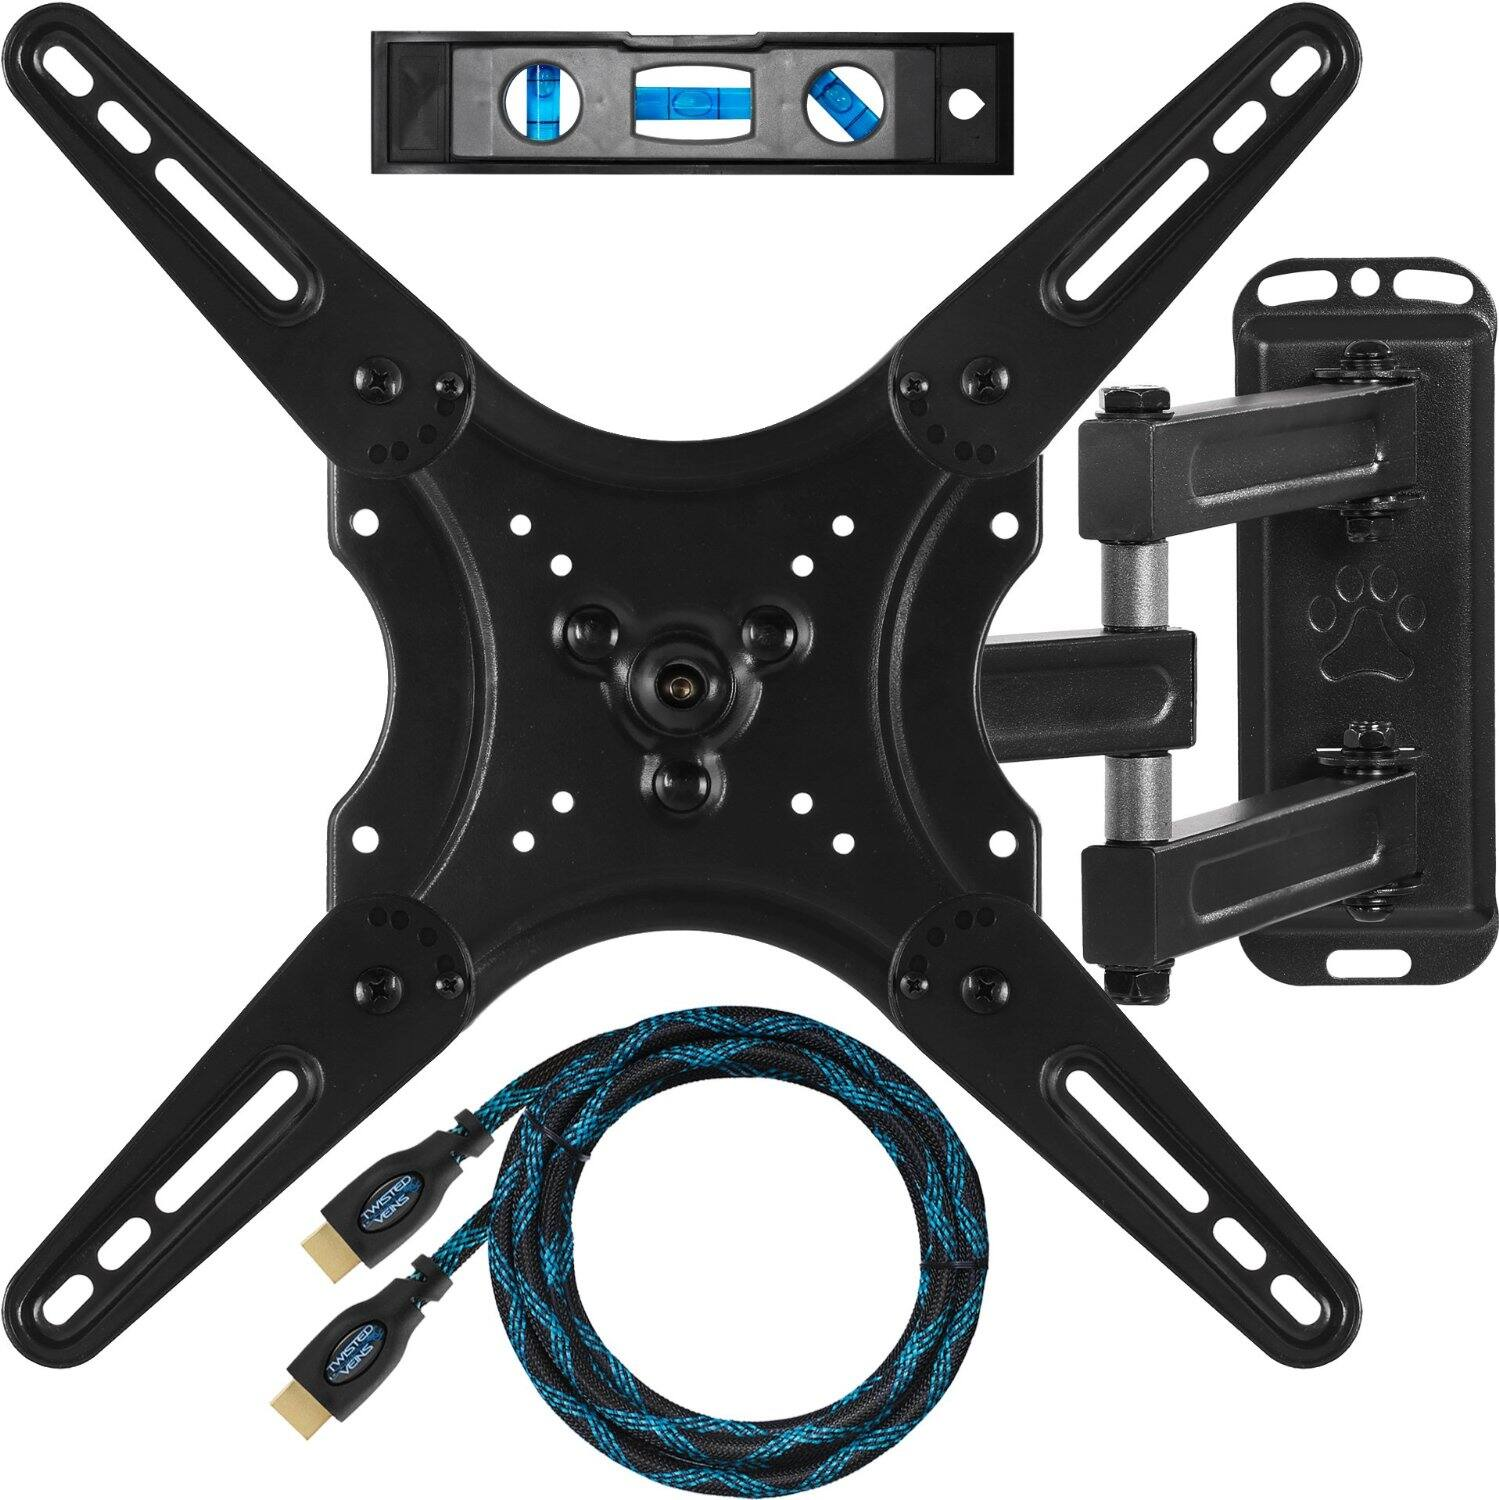 """Cheetah Articulated Wall Mount for 23""""-49"""" HDTVs + 10' HDMI Cable + 6"""" Bubble Level $13.48 Shipped w/ Prime Amazon.com"""